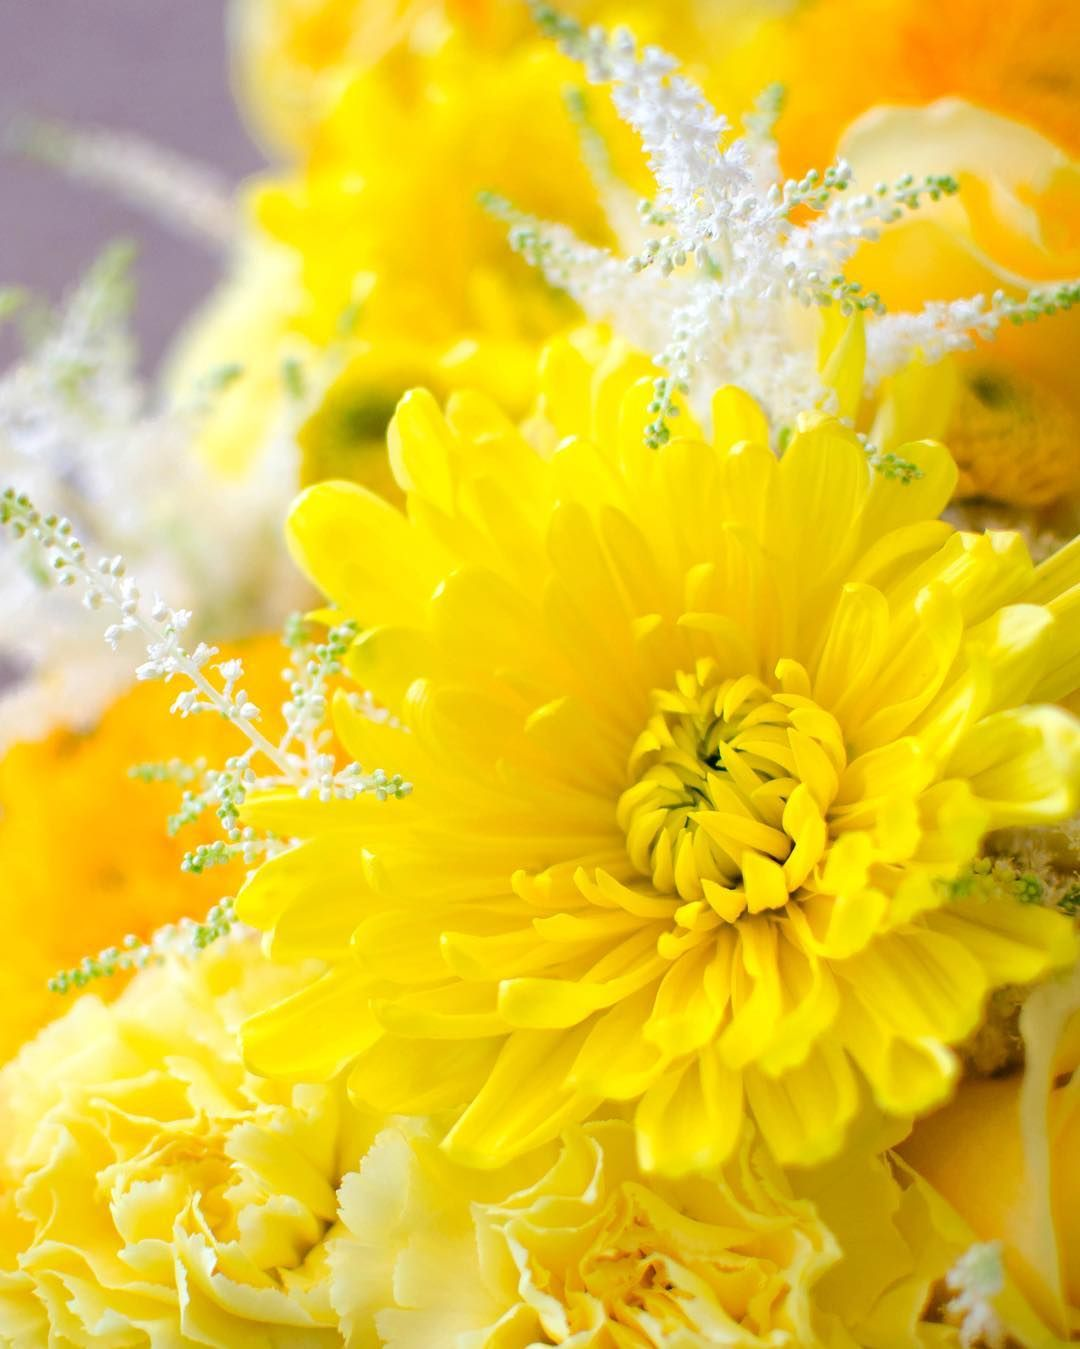 A mum is the perfect flower to complete our yellow color